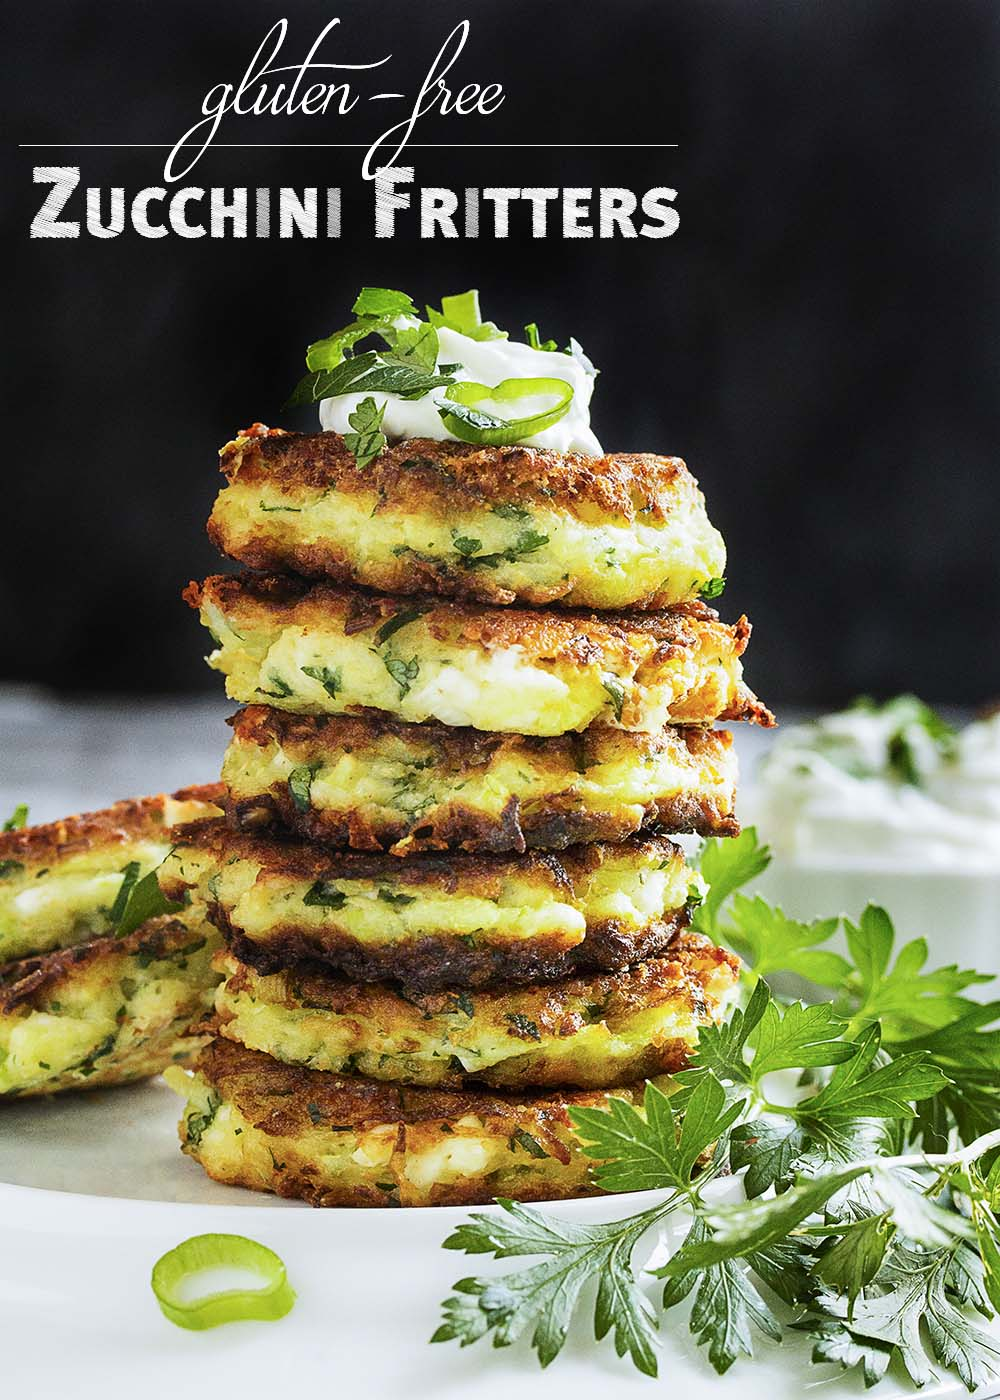 Shredded zucchini, salty feta, rice flour, and fresh parsley are featured in these vegetarian, gluten-free zucchini fritters. | justalittlebitofbacon.com